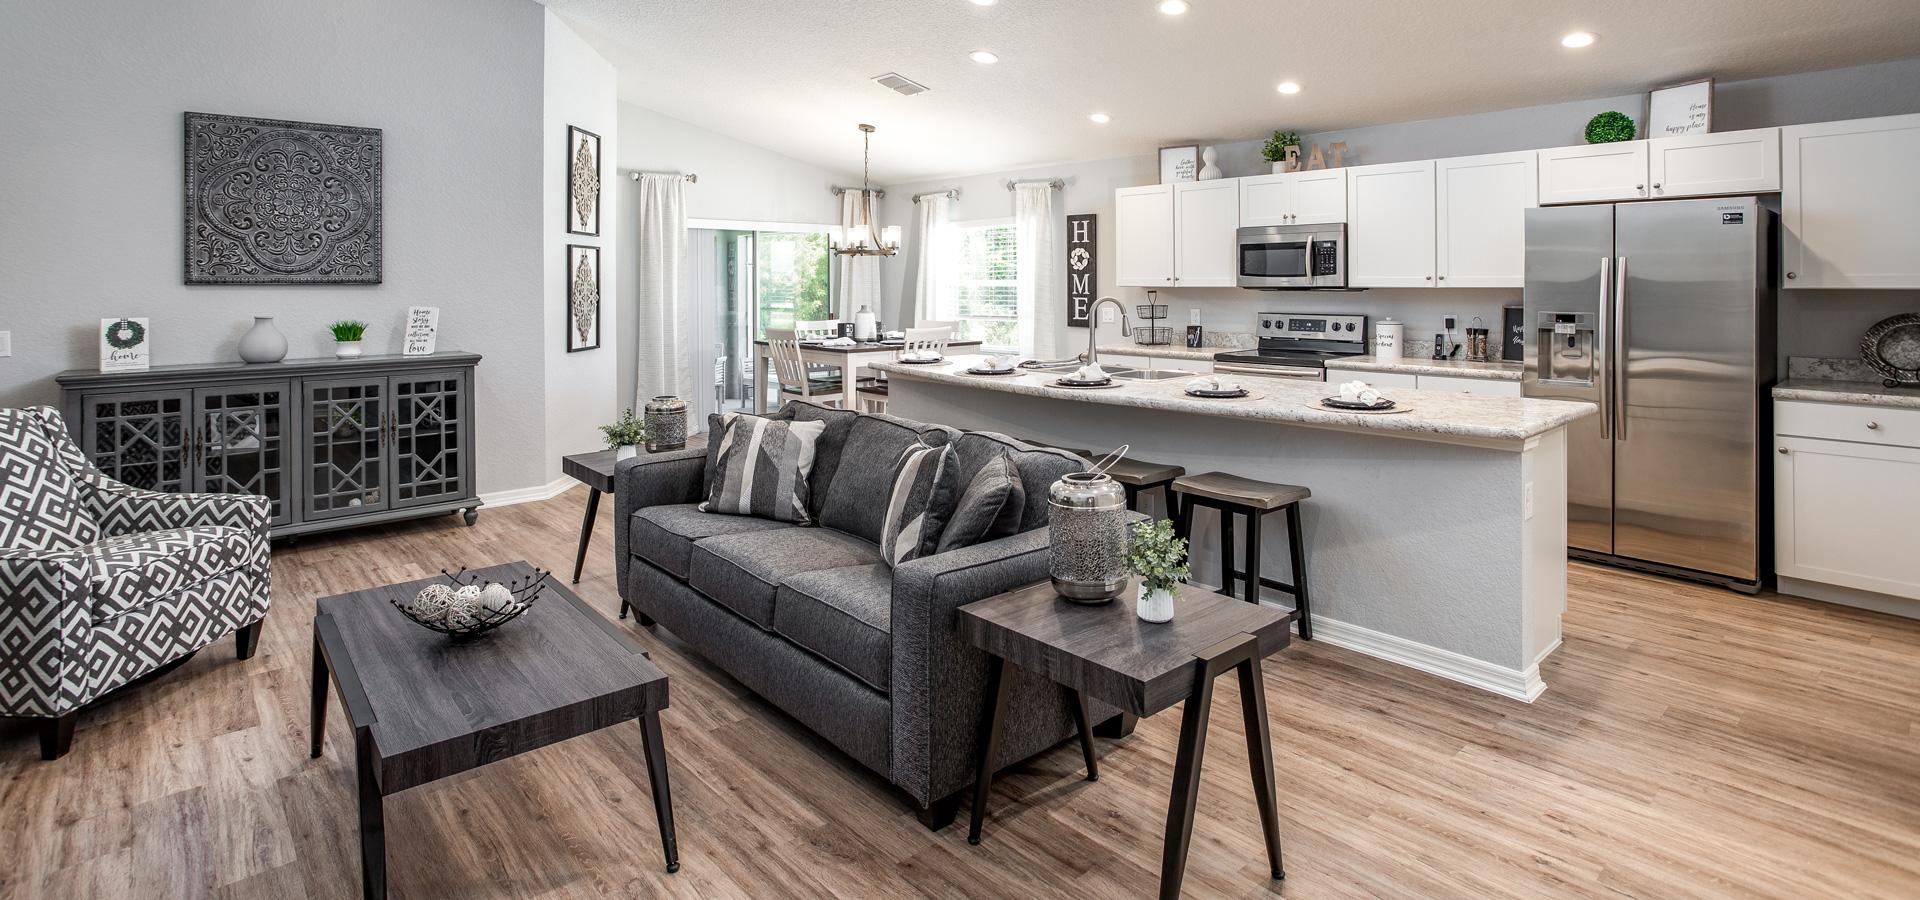 Open concept floor plan with great living area and kitchen